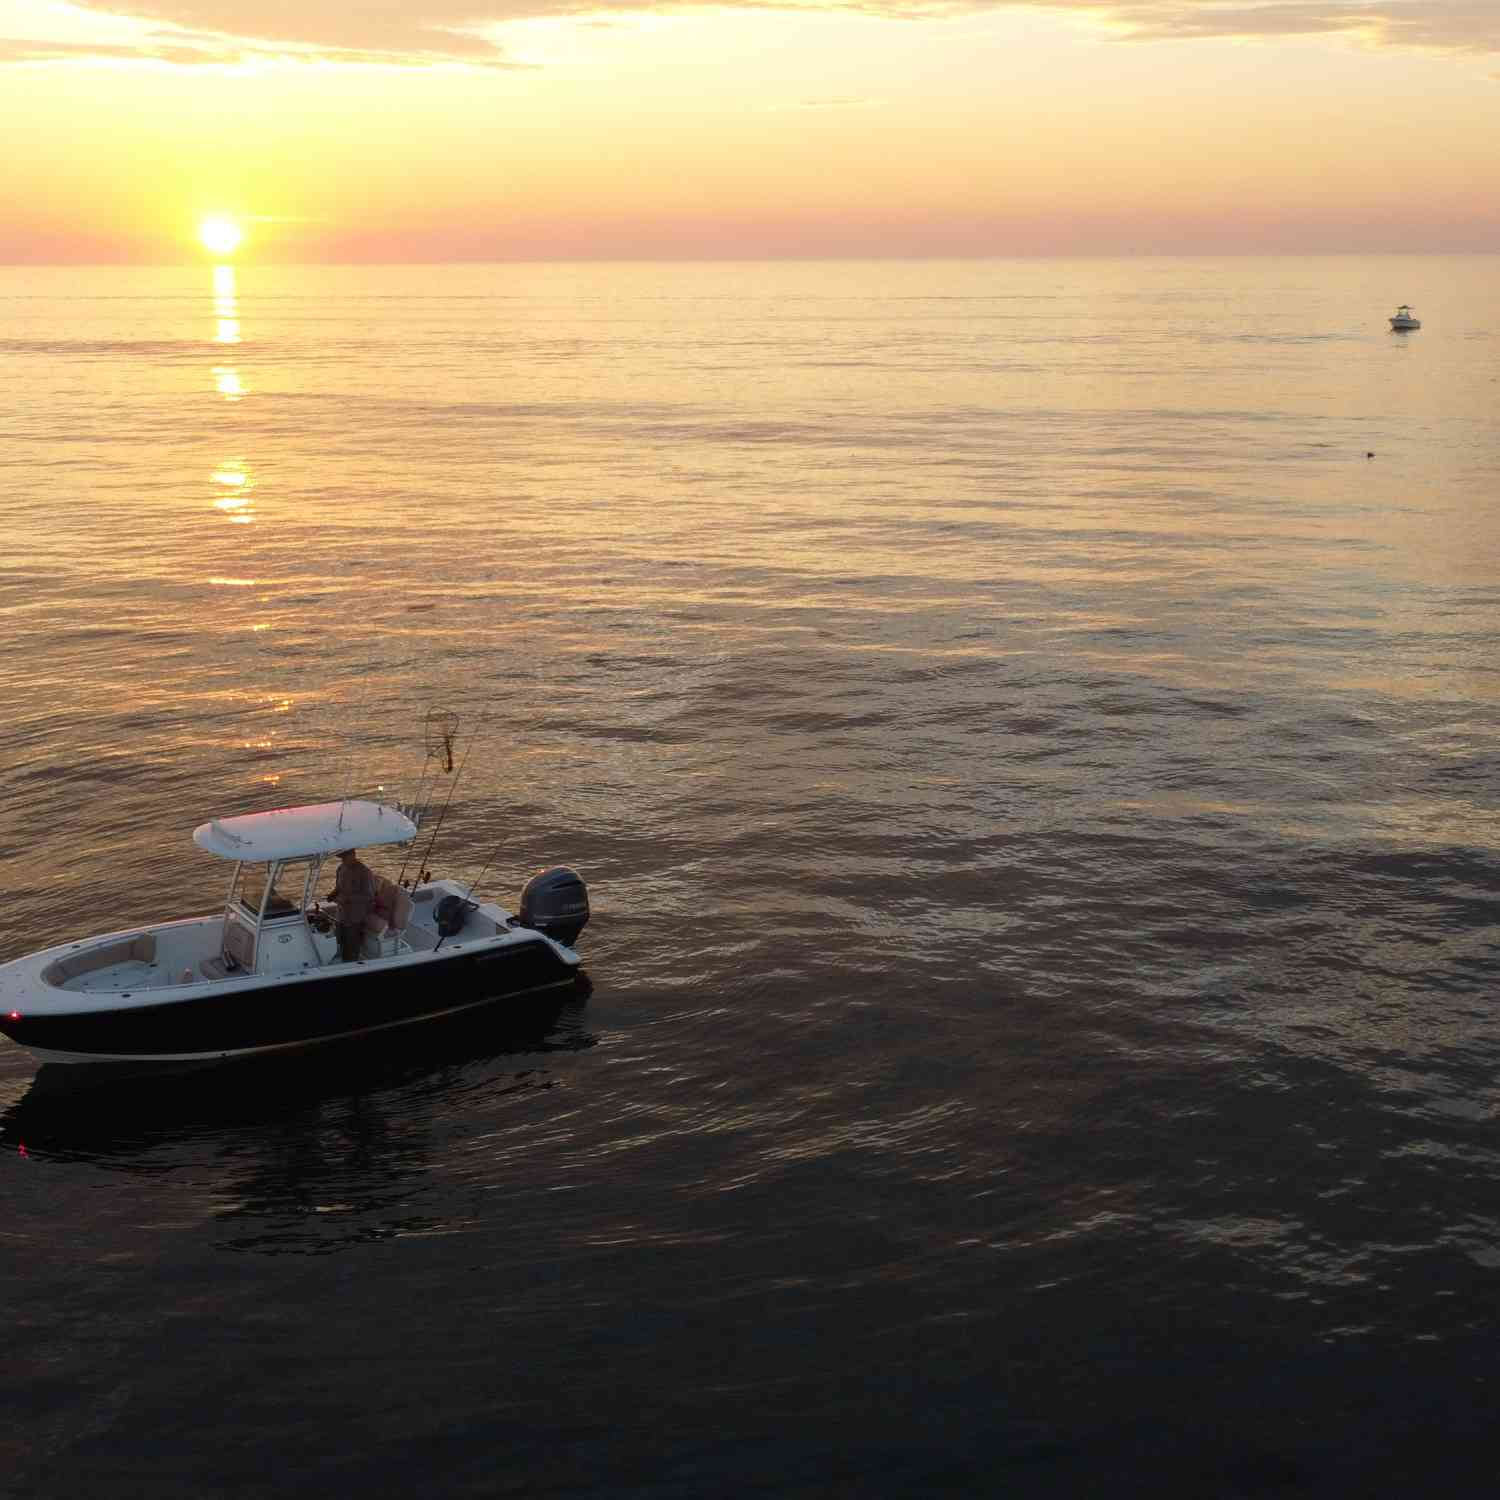 Title: Sunrise Fishing - On board their Sportsman Heritage 241 Center Console - Location: MA / NH state line.. Participating in the Photo Contest #SportsmanAugust2020